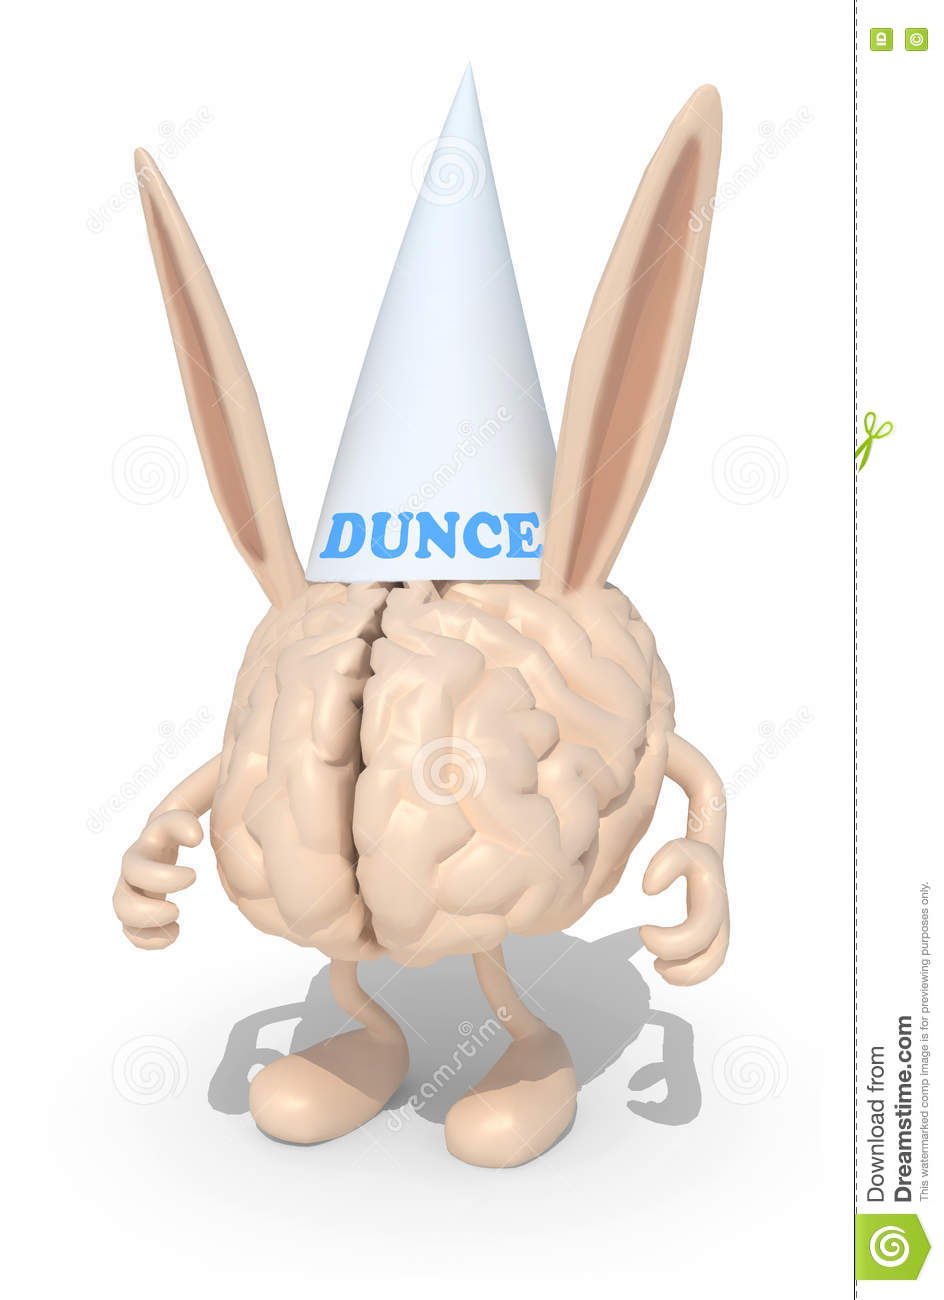 Human brain with dunce ears and hat